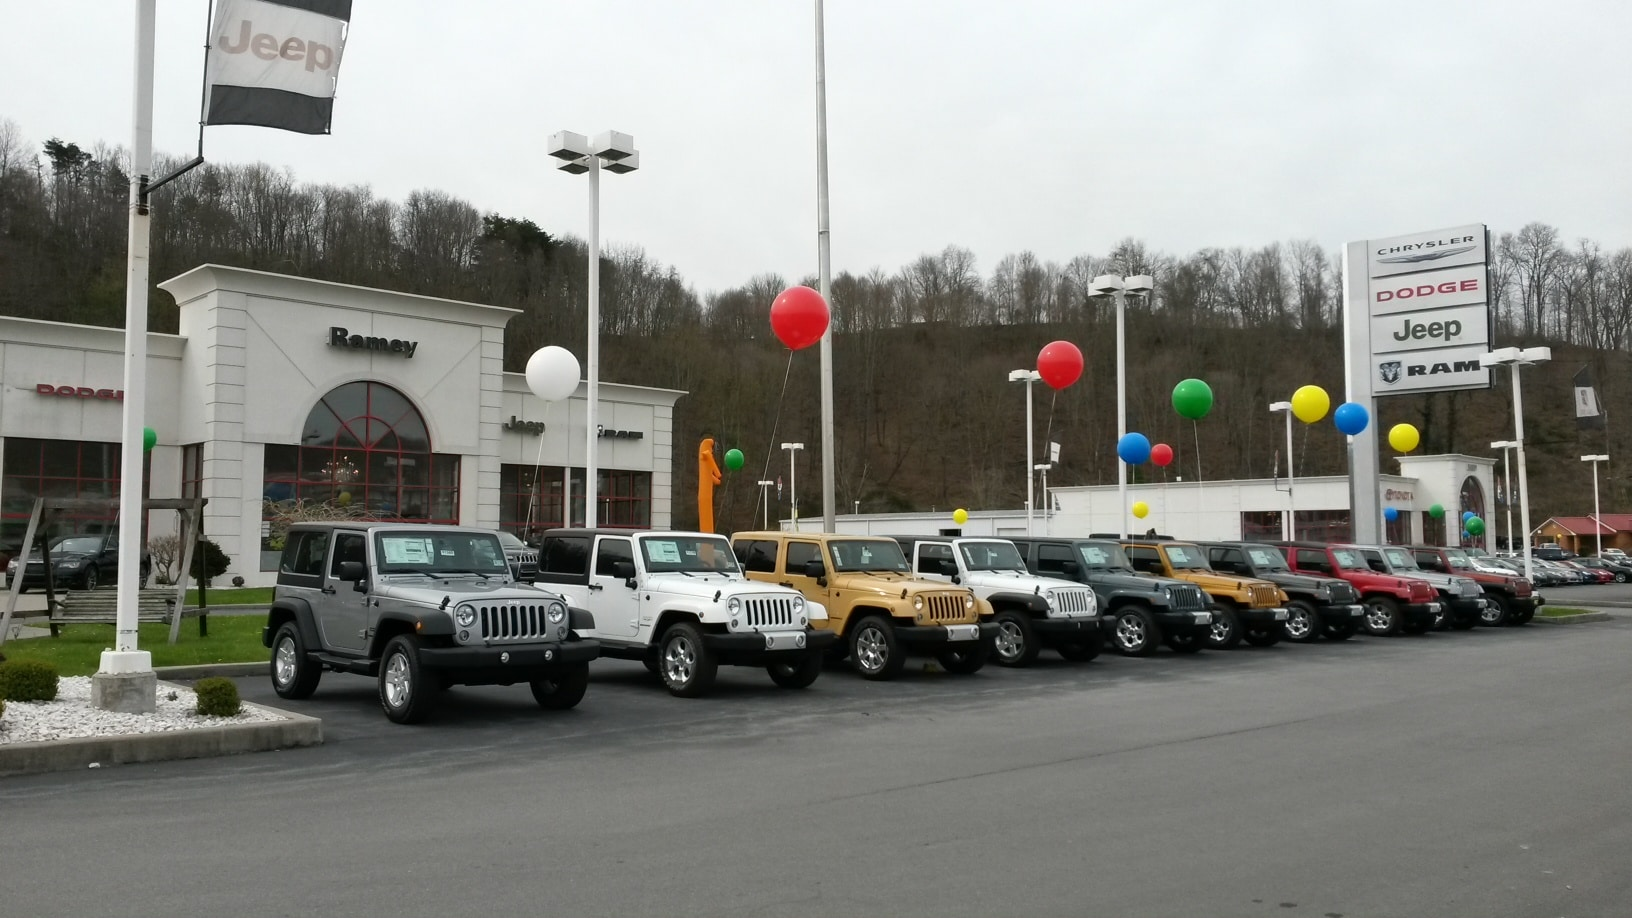 Dodge Dealer Princeton Wv >> About Ramey Chrysler Dodge Jeep Ram Fiat Princeton Wv Car Dealer